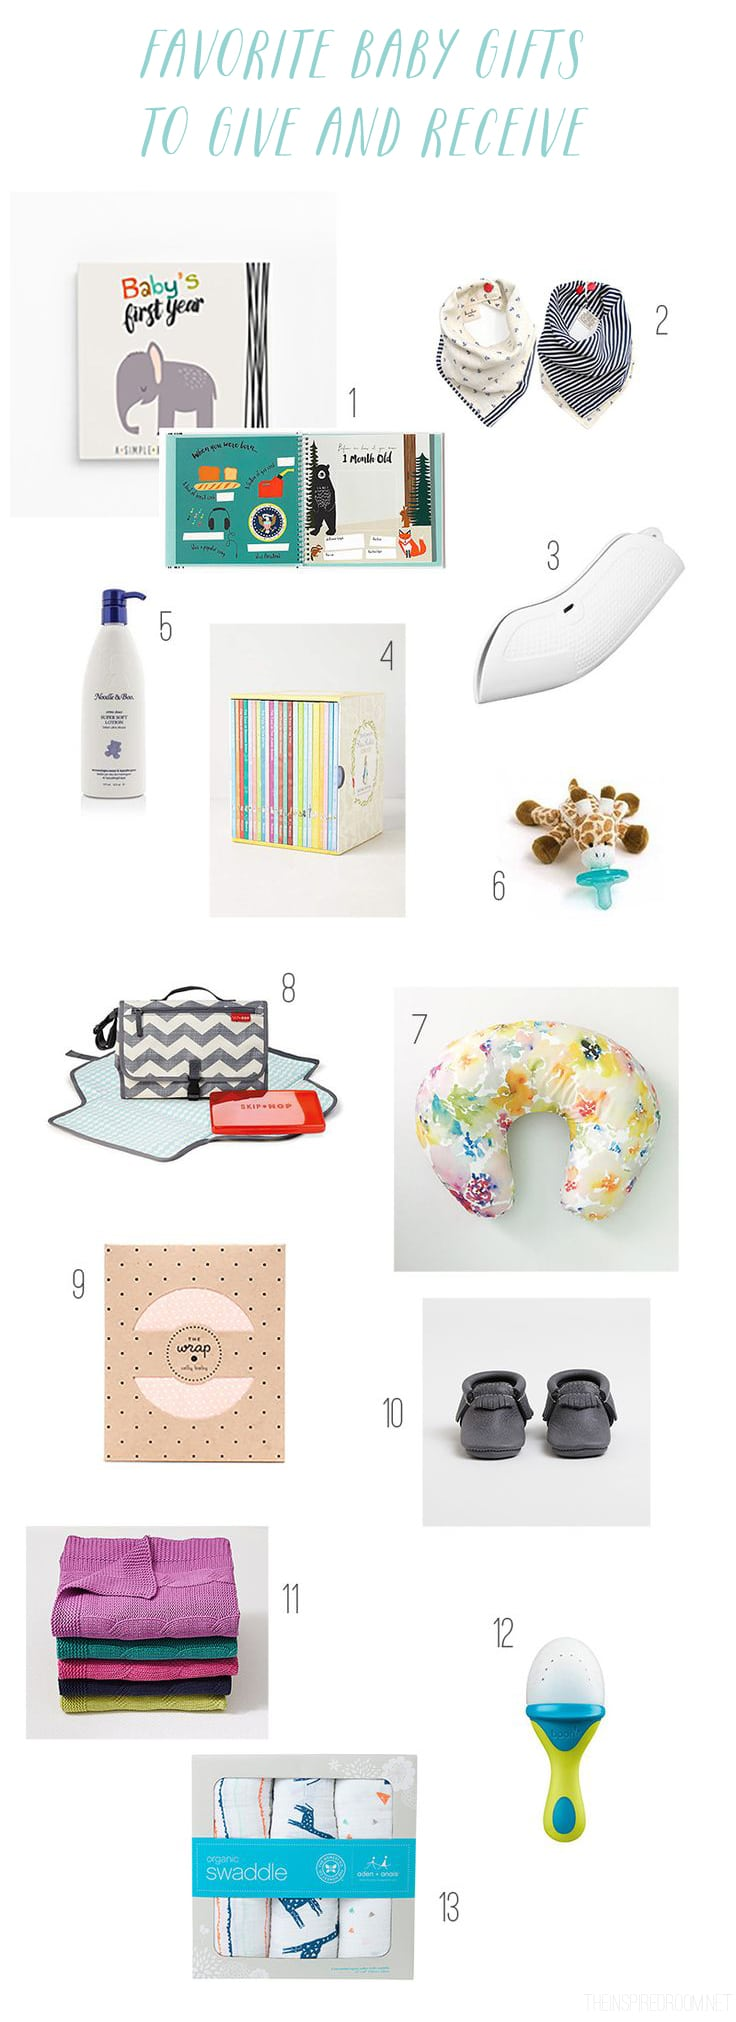 Favorite Baby Gifts to Give and Receive